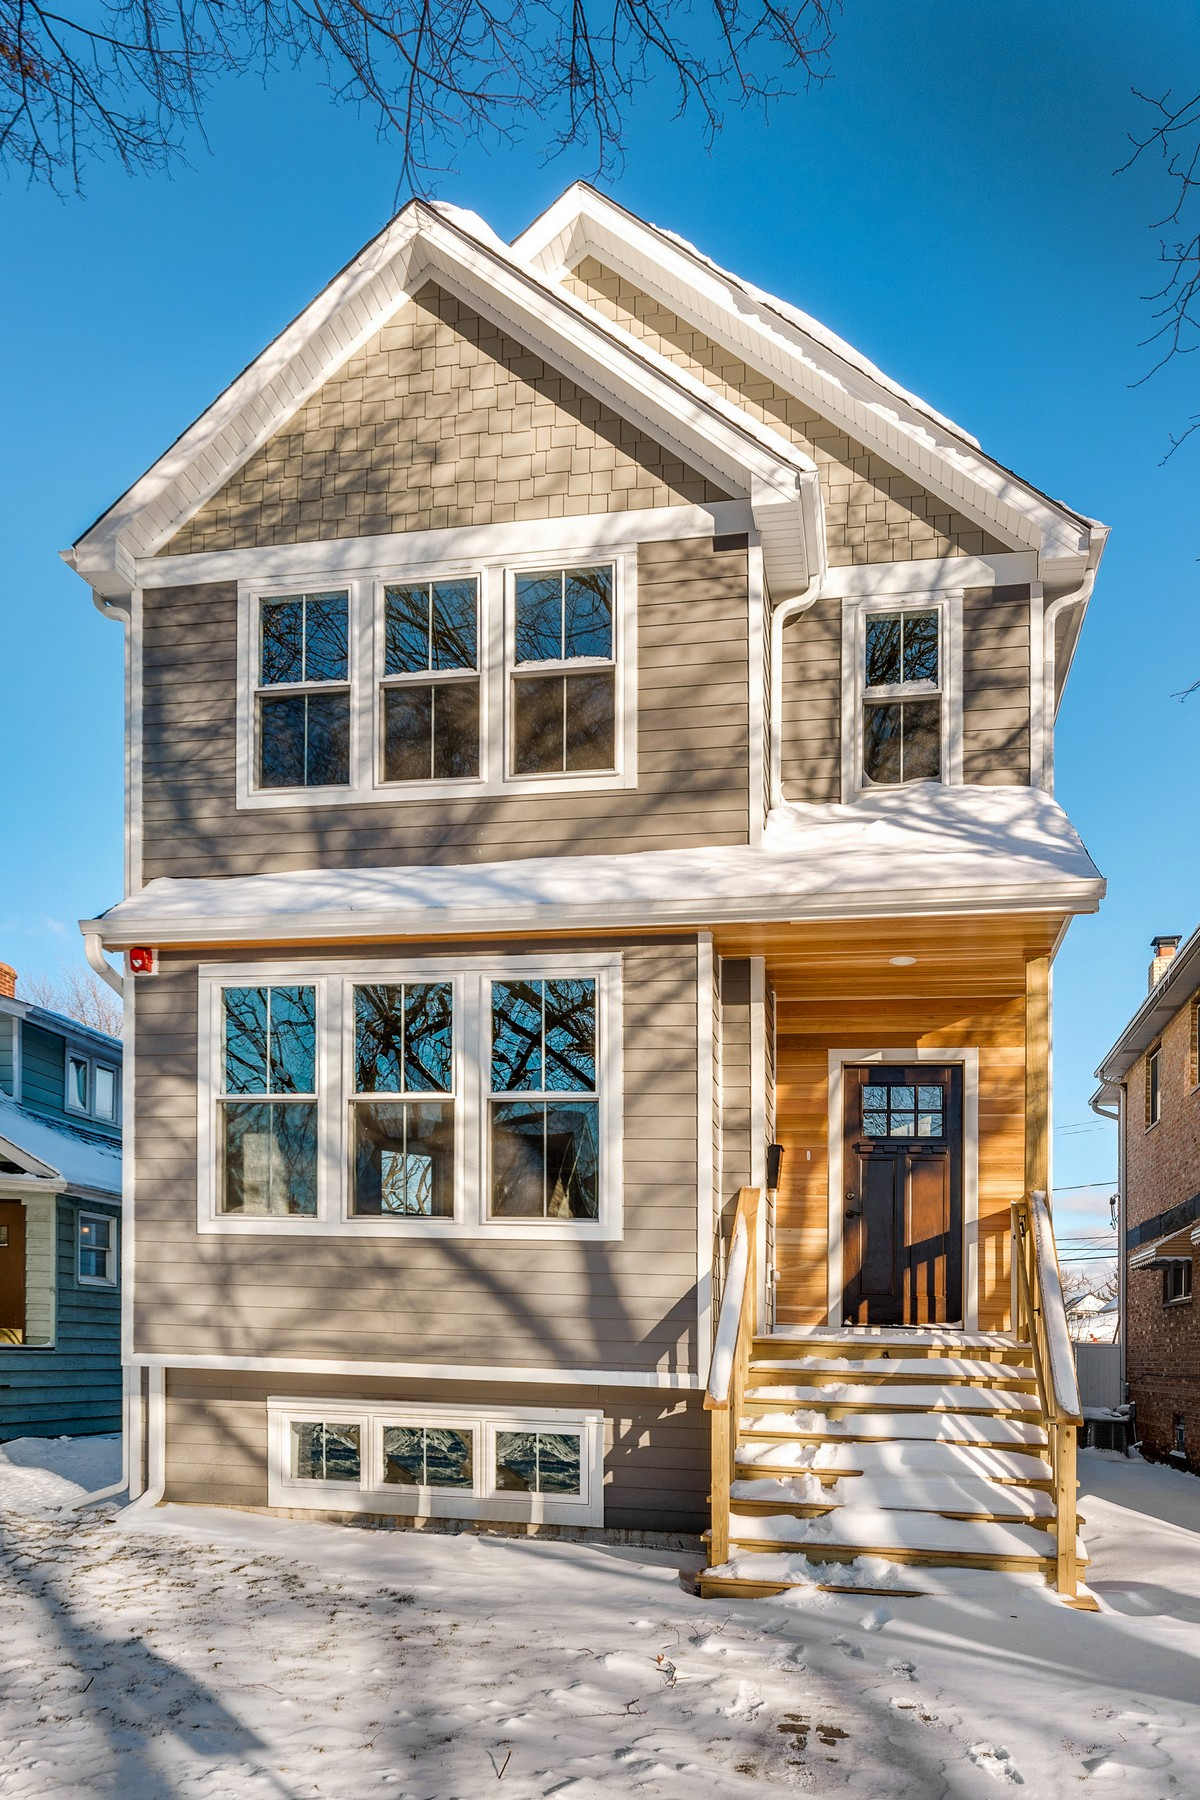 Single Family Home for Active at Spacious New Construction Single Family Home 710 Hayes Avenue Oak Park, Illinois 60302 United States